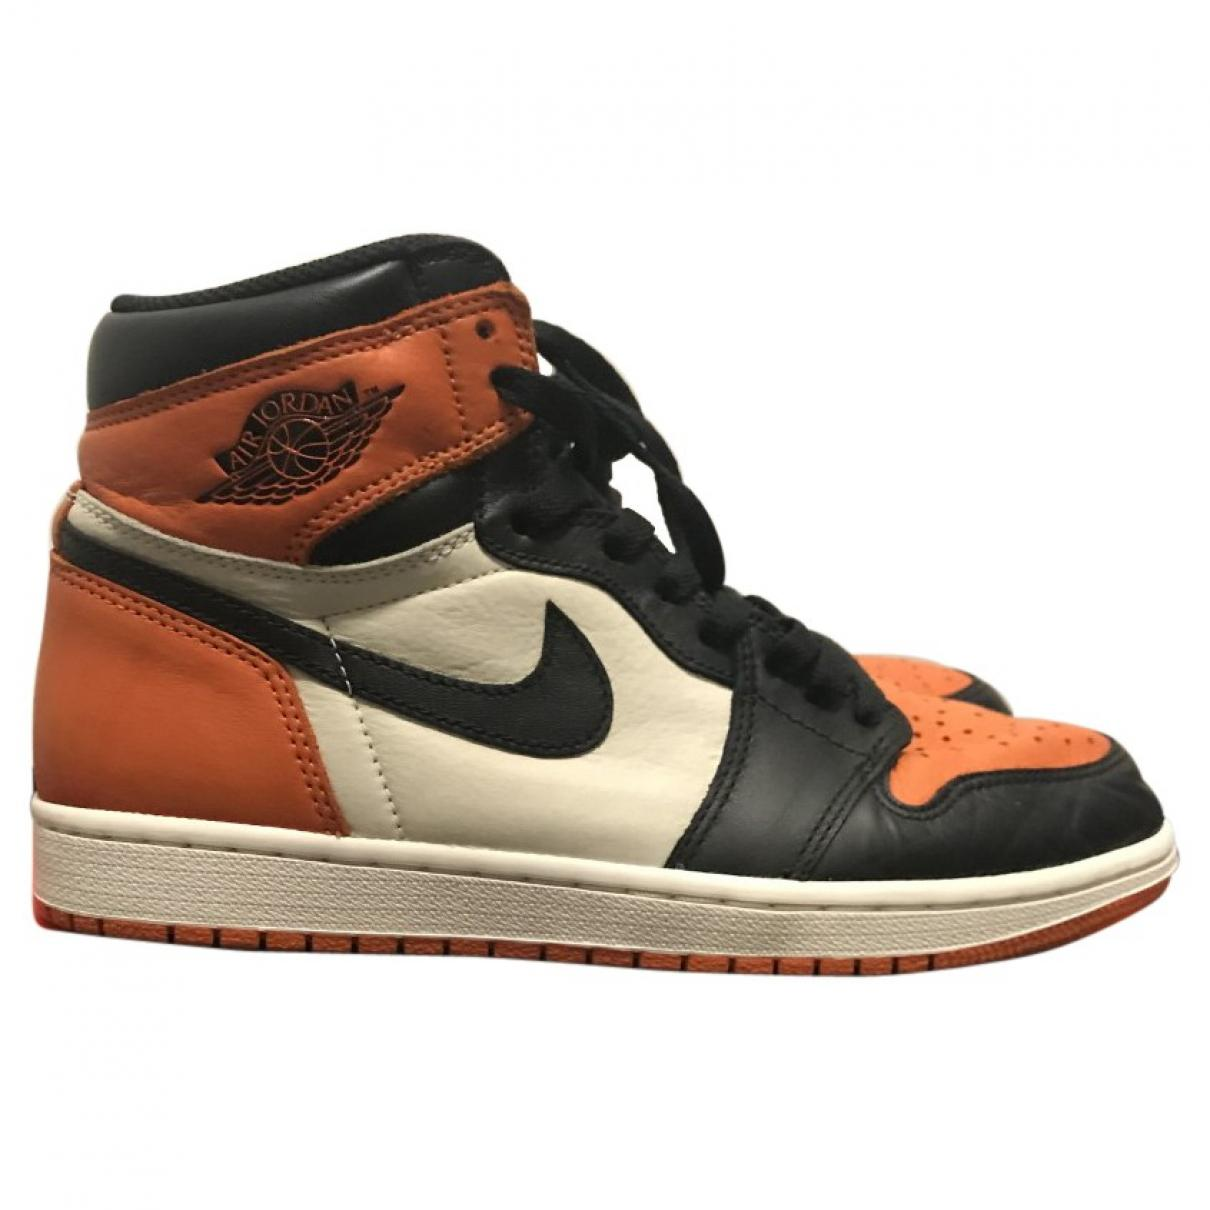 70f46b06a78 Nike. Men s Pre-owned Jordan Orange Leather Trainers.  544 From Vestiaire  Collective